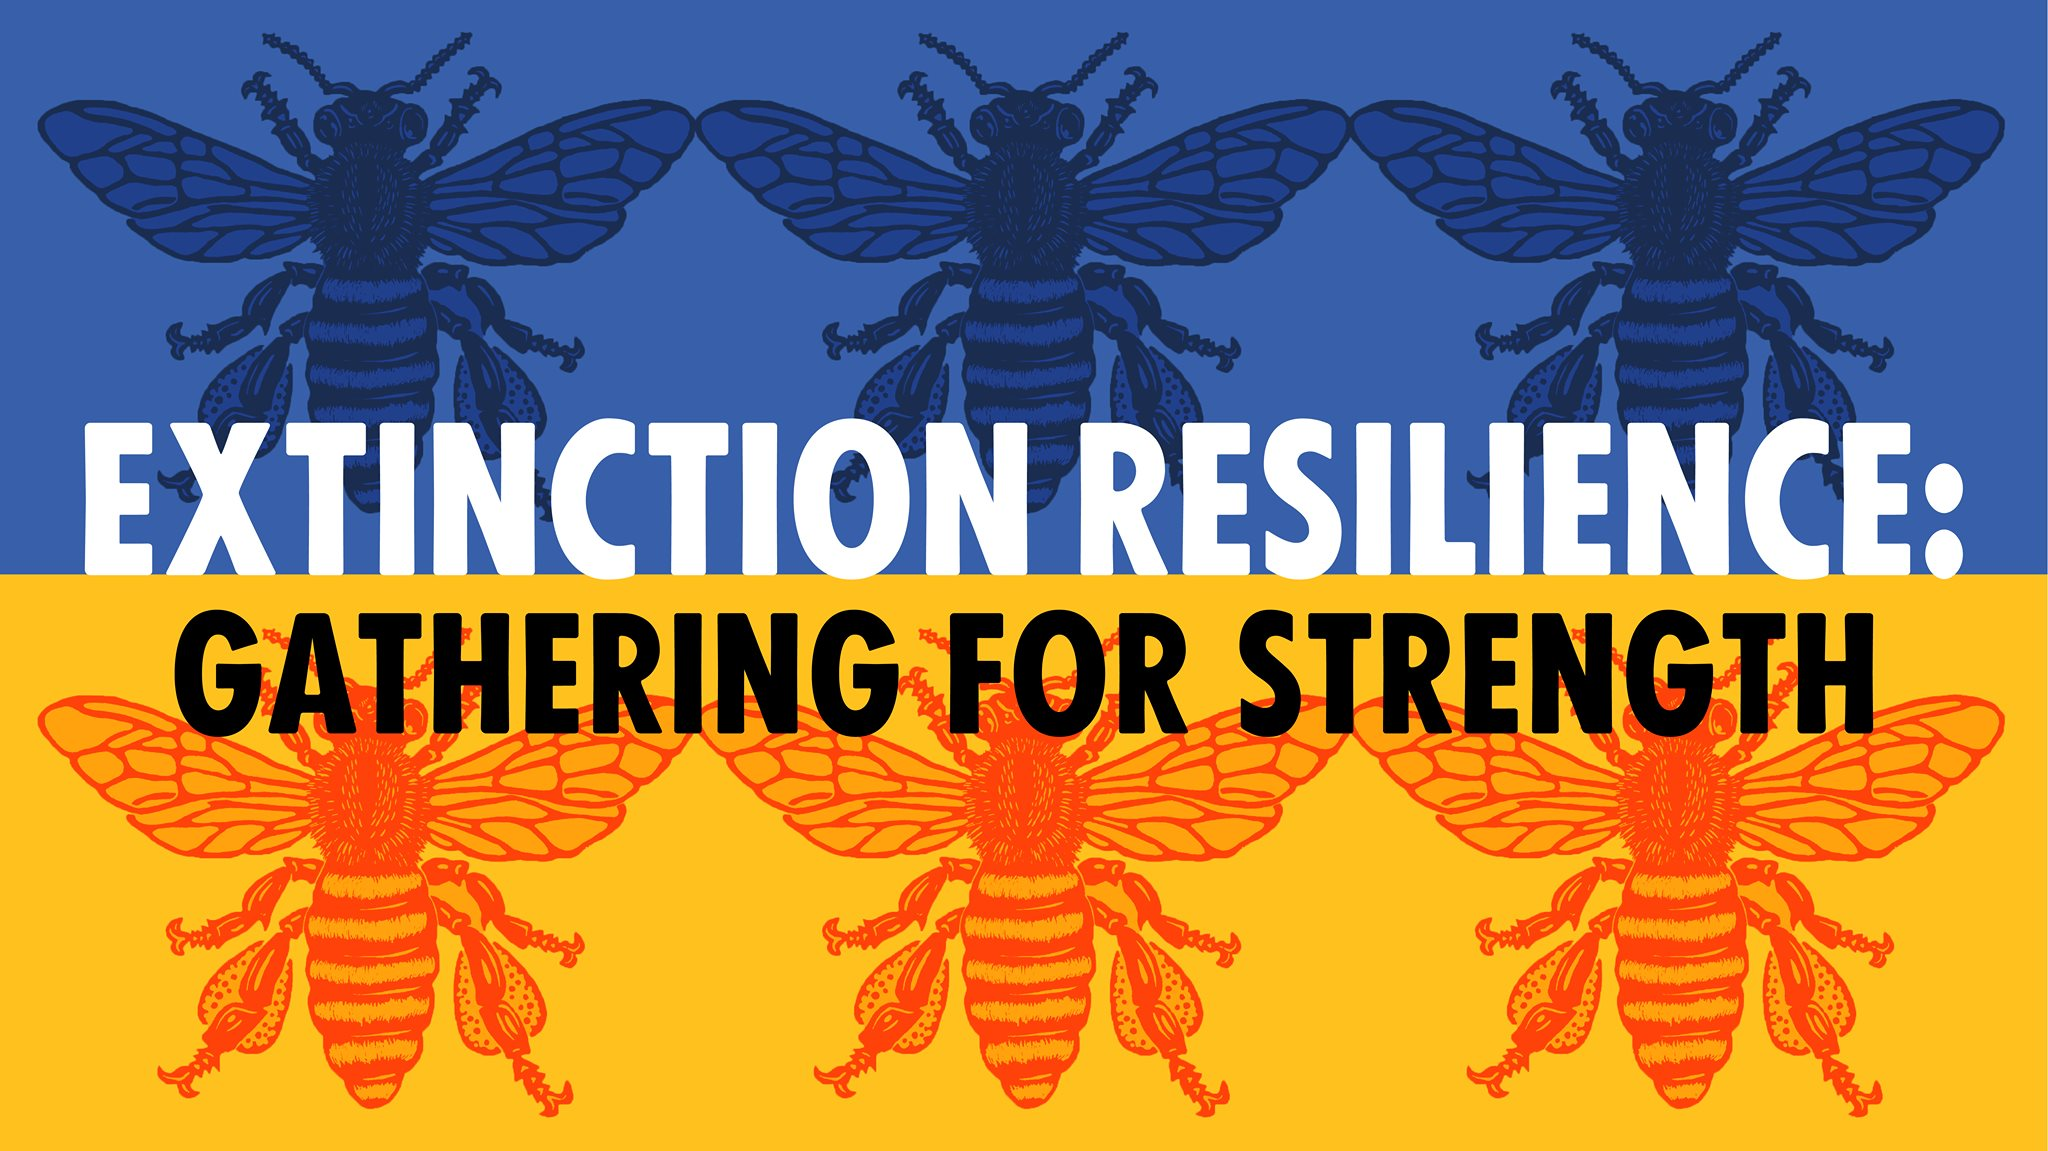 Extinction Resilience